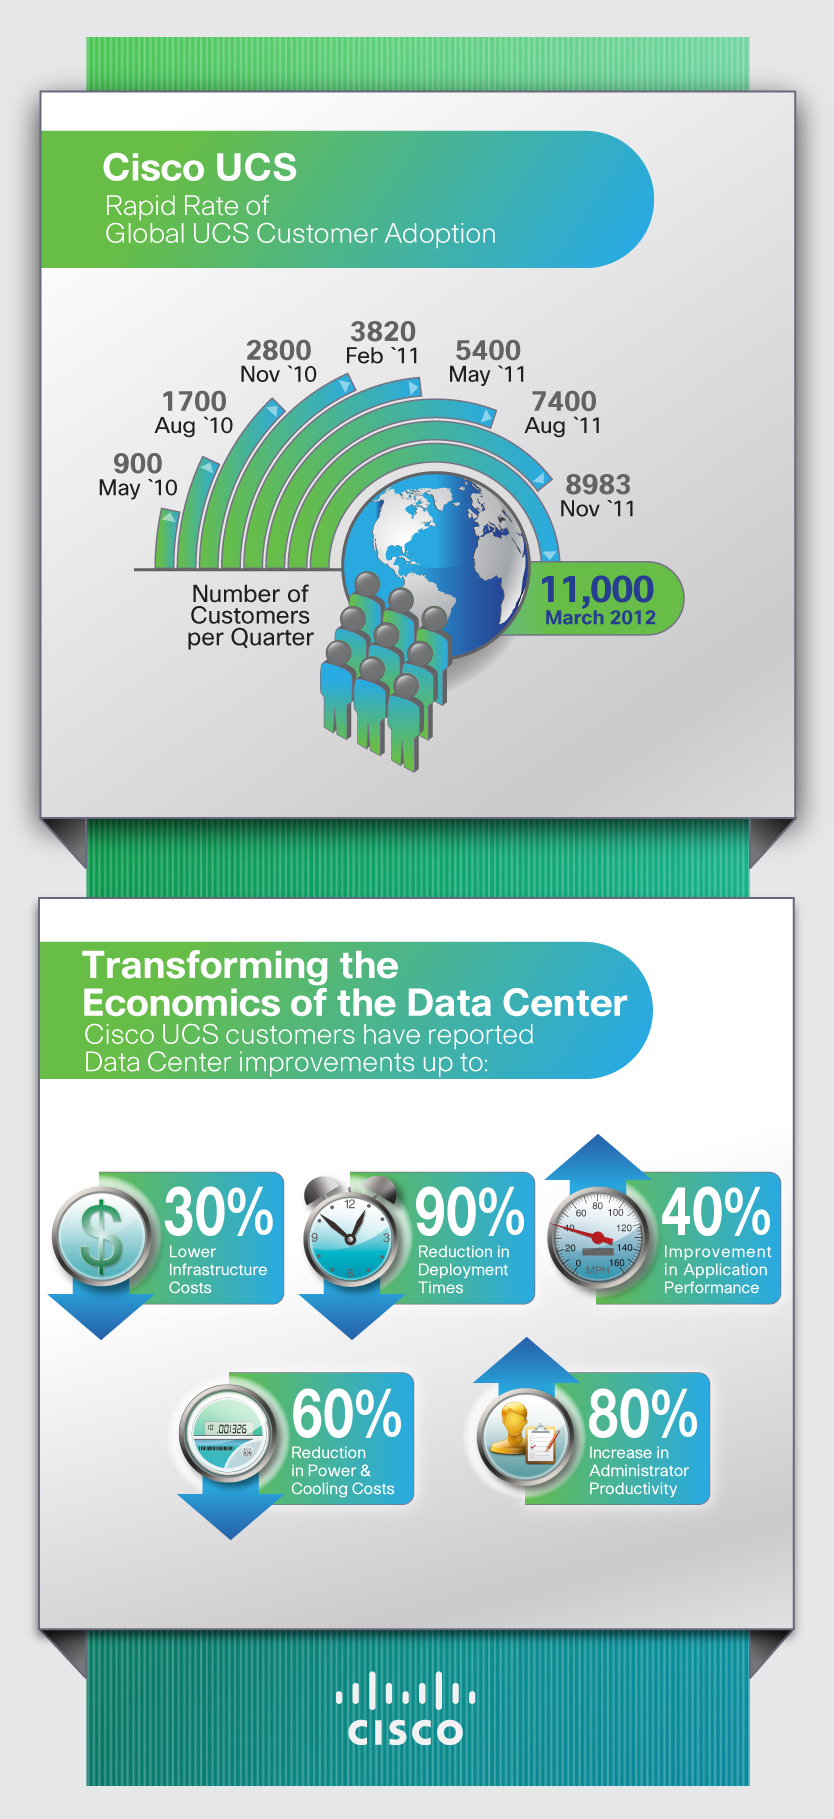 economics-data-center-cisco.jpg